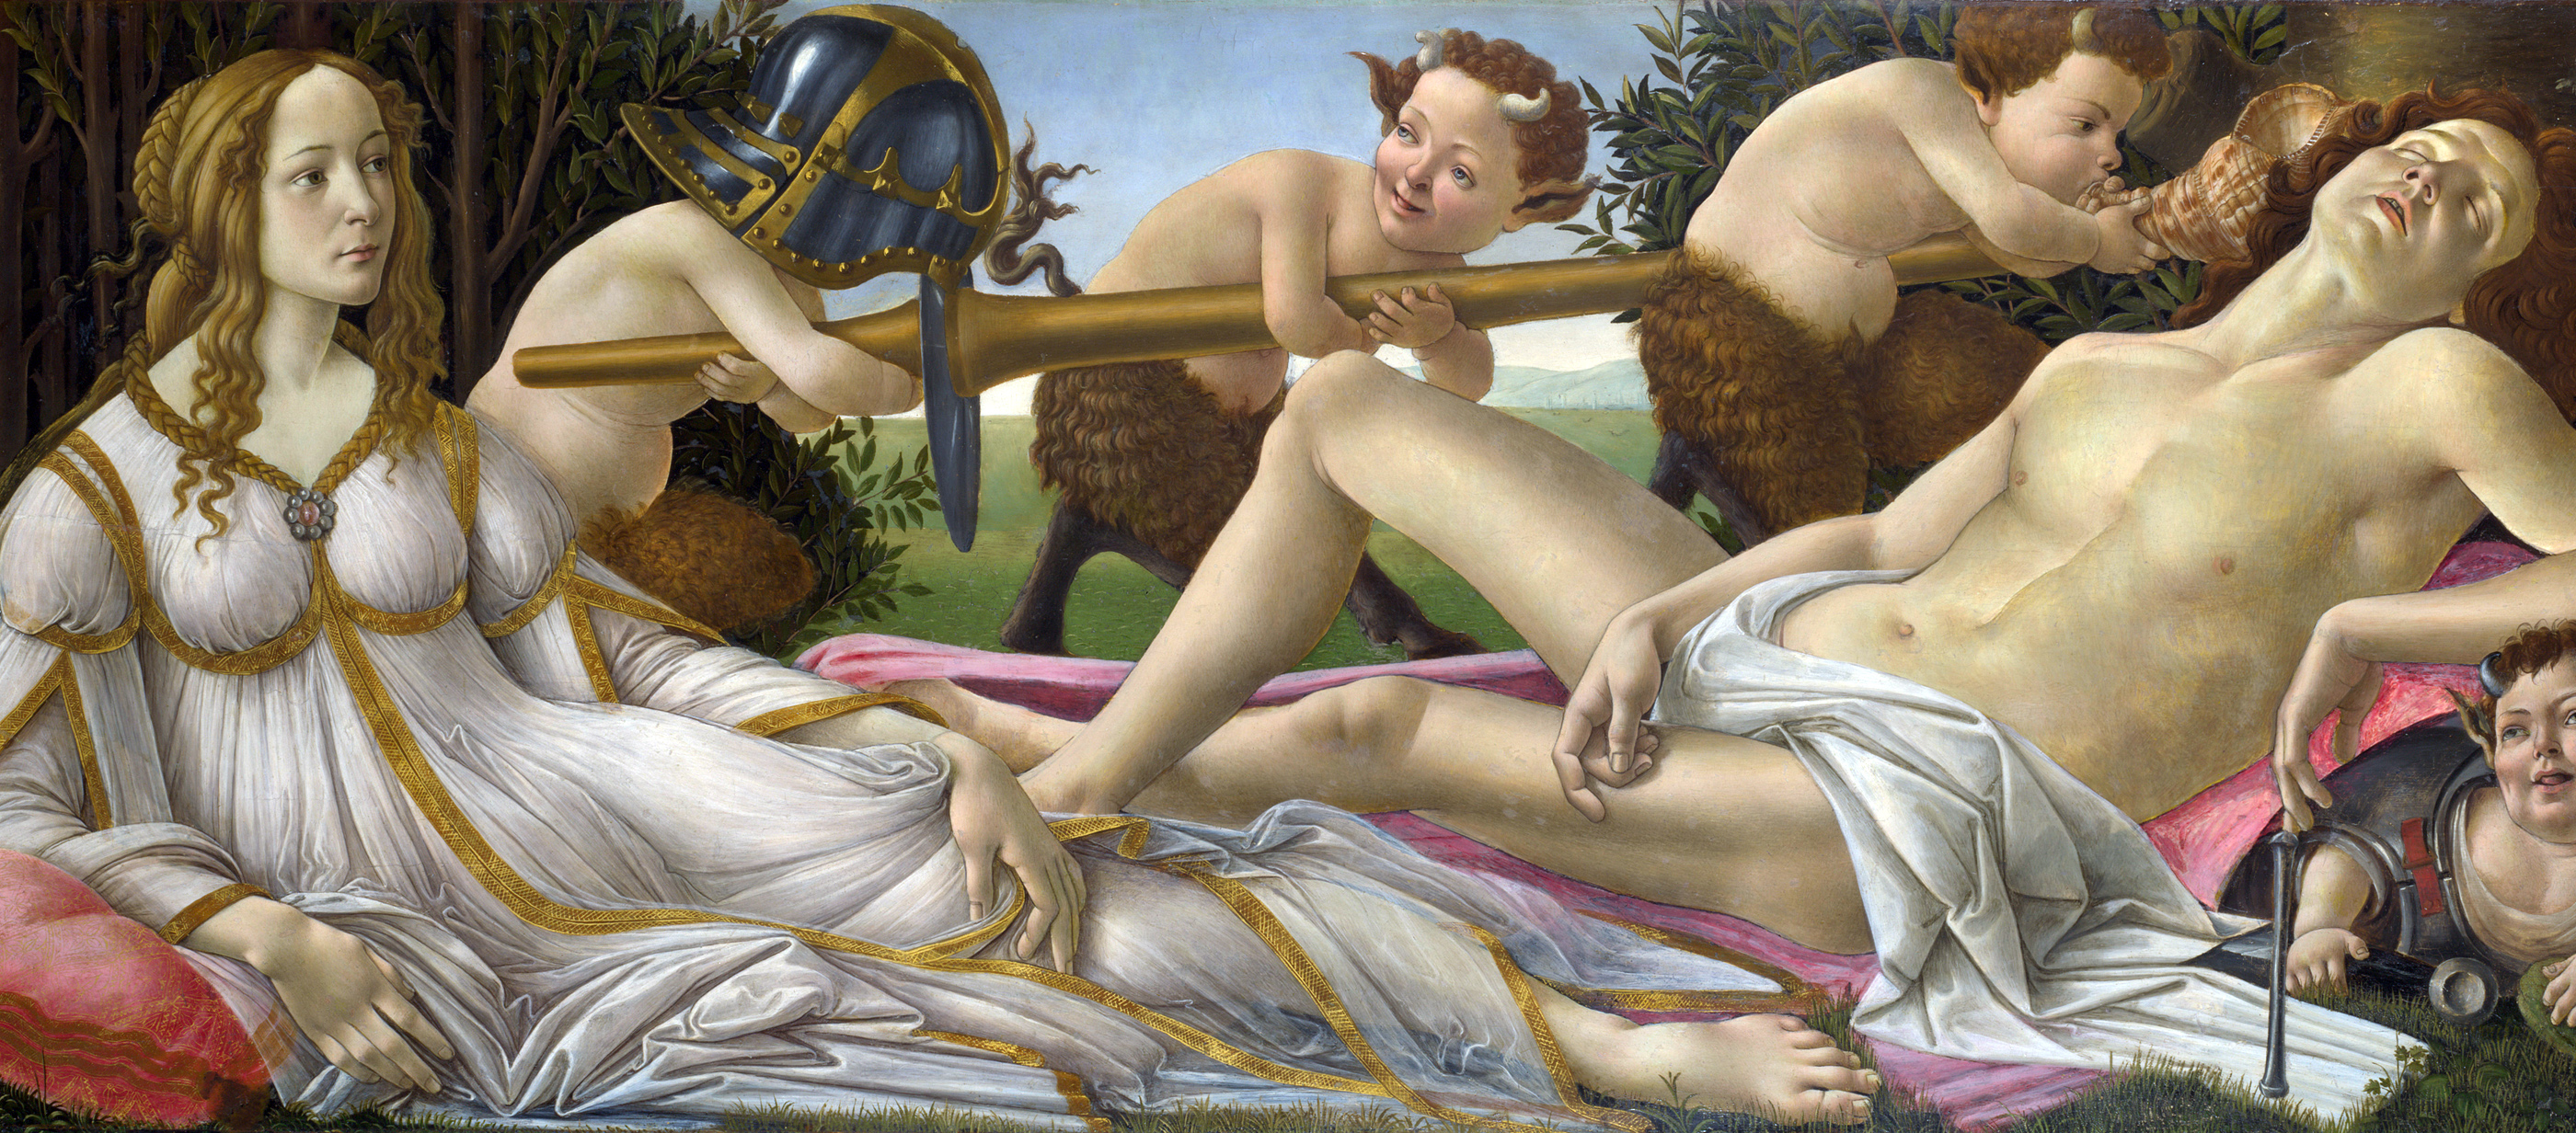 Mars and Venus, by Sandro Botticelli, c. 1485. National Gallery, London, England.